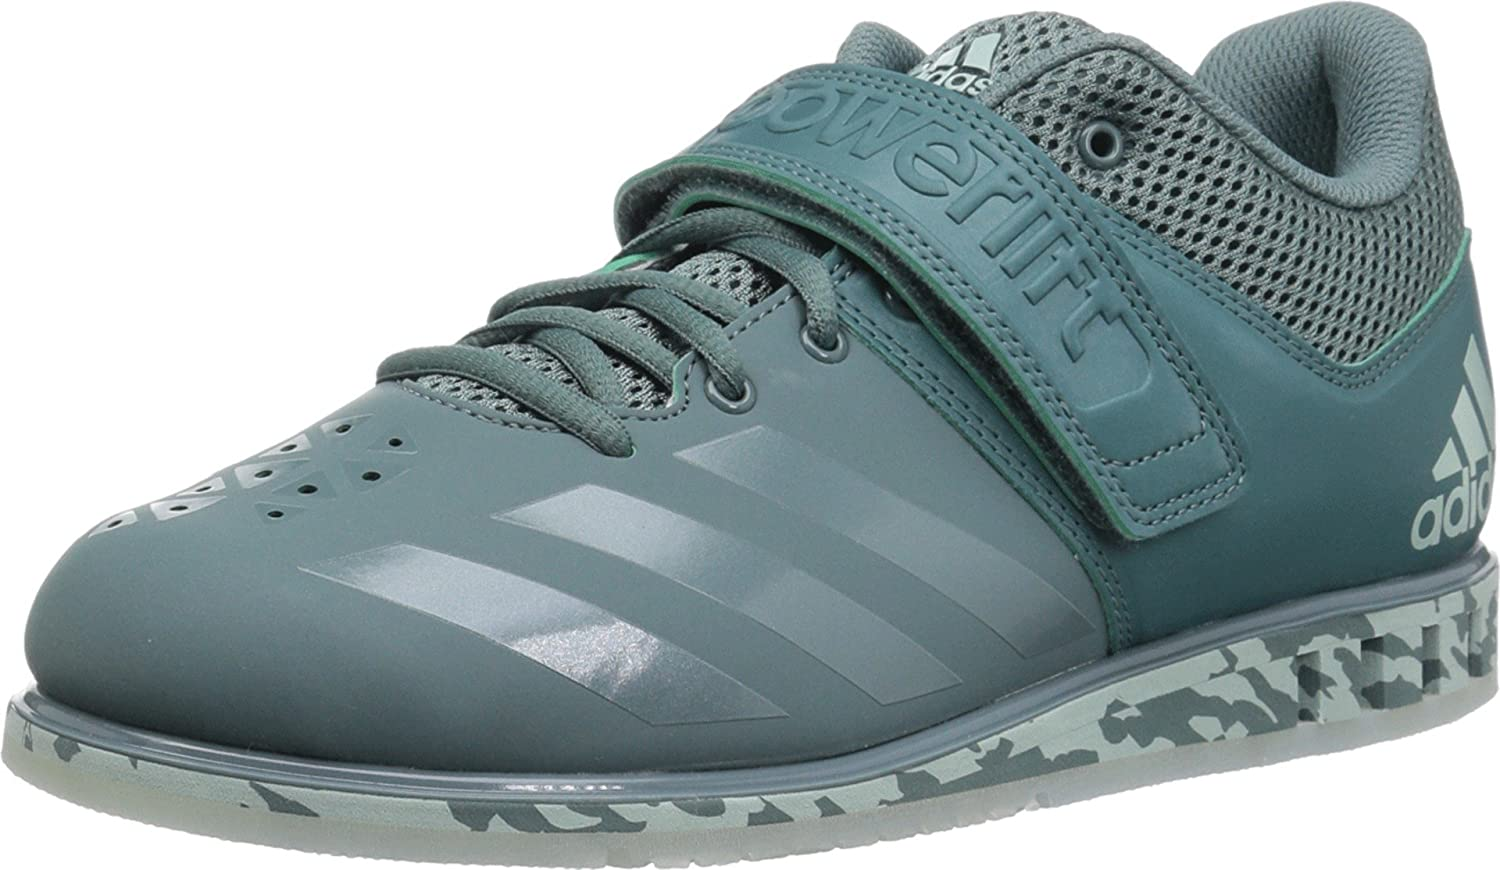 Raw Green Raw Green Ash Green 11 D(M) US adidas Powerlift.3.1 shoes Men's Weightlifting